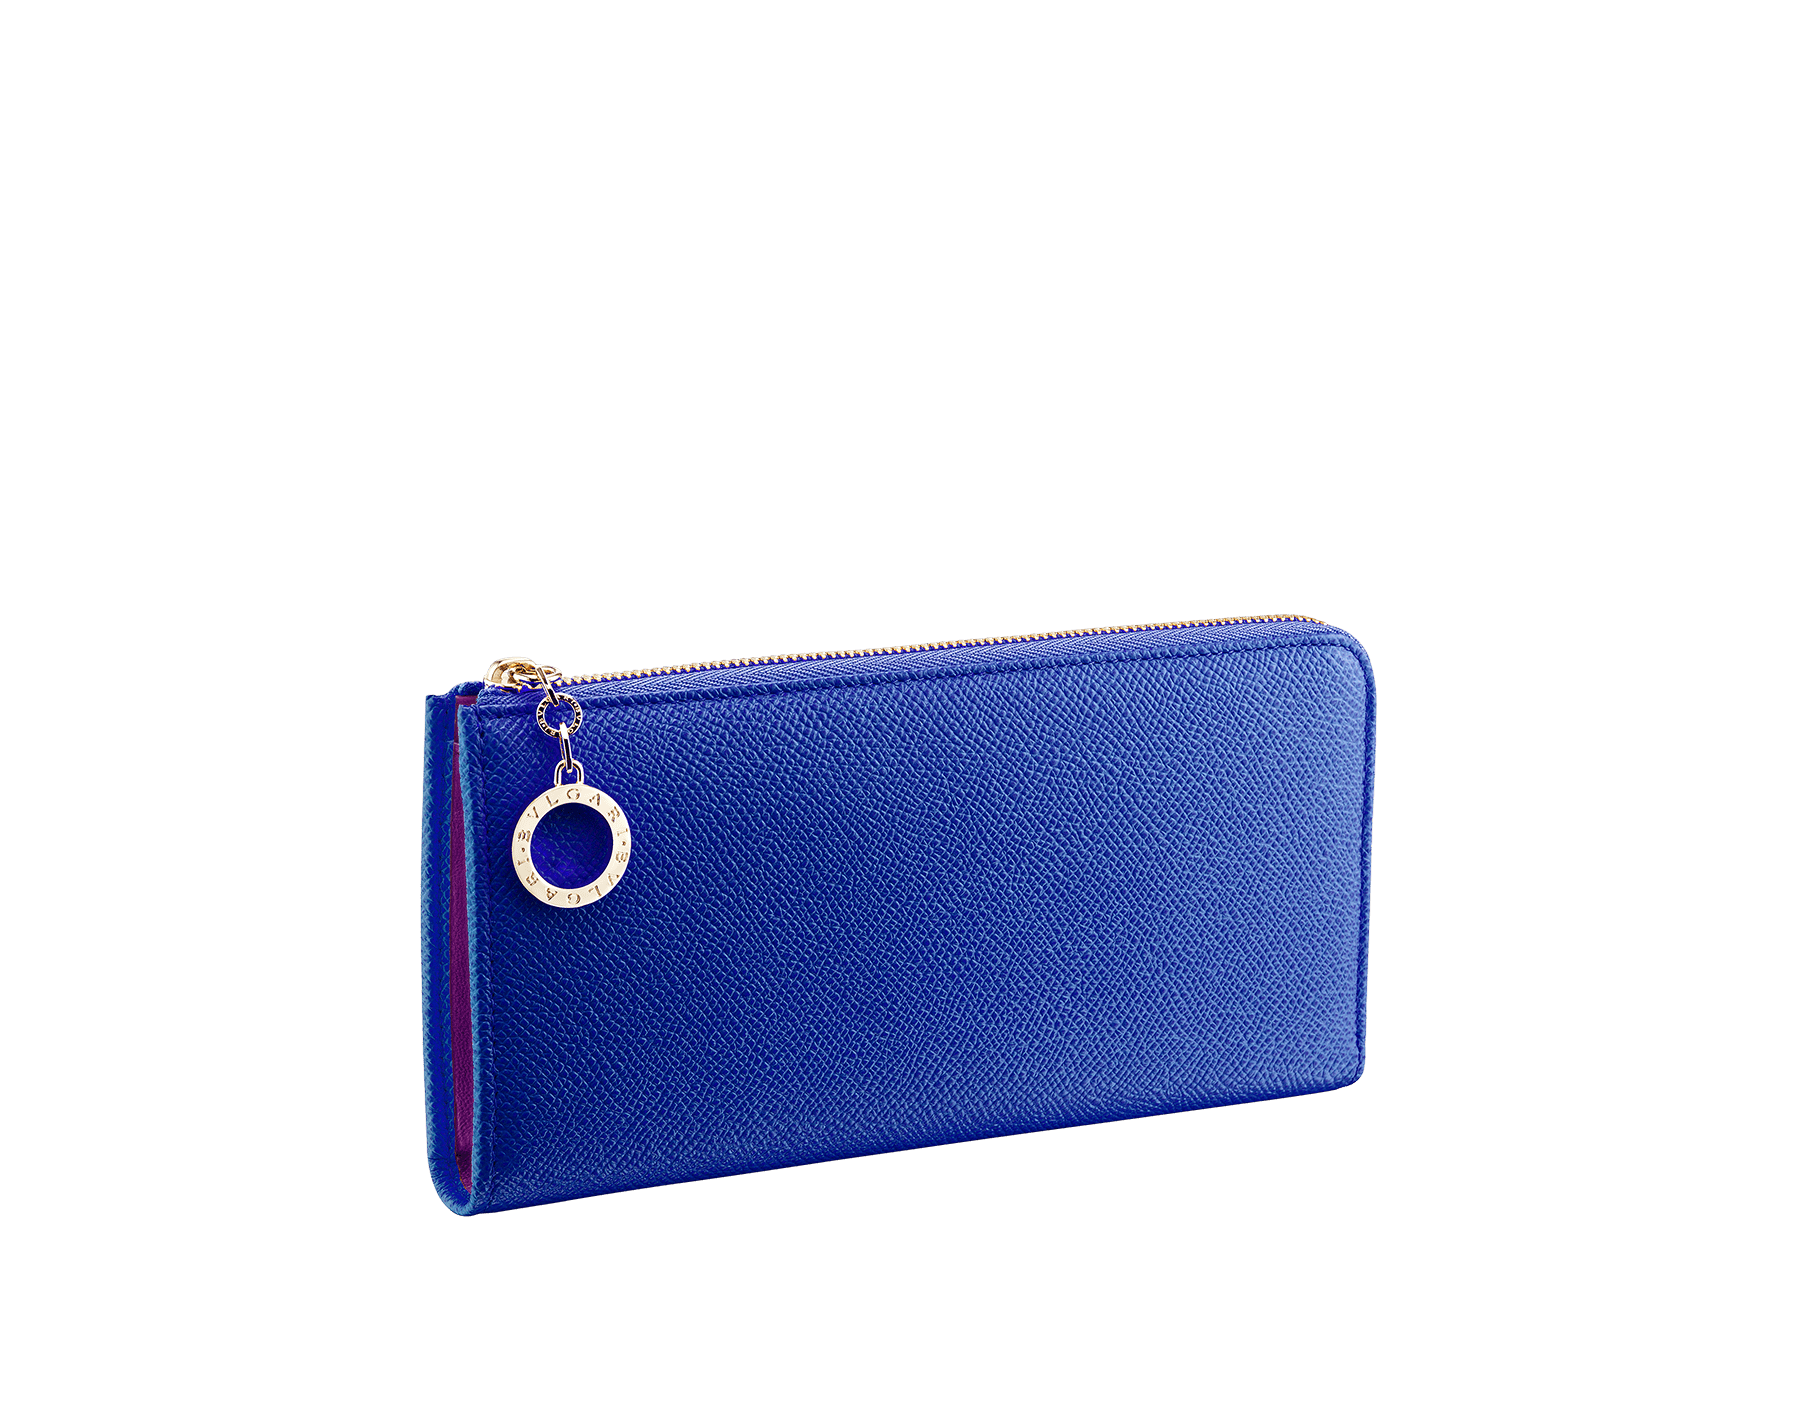 BVLGARI BVLGARI L-shaped zipped wallet in cobalt tourmaline bright grain calf leather and aster amethyst nappa. Iconic logo zip puller in light gold plated brass 579-WLT-MZP-SLIM-Lc image 1